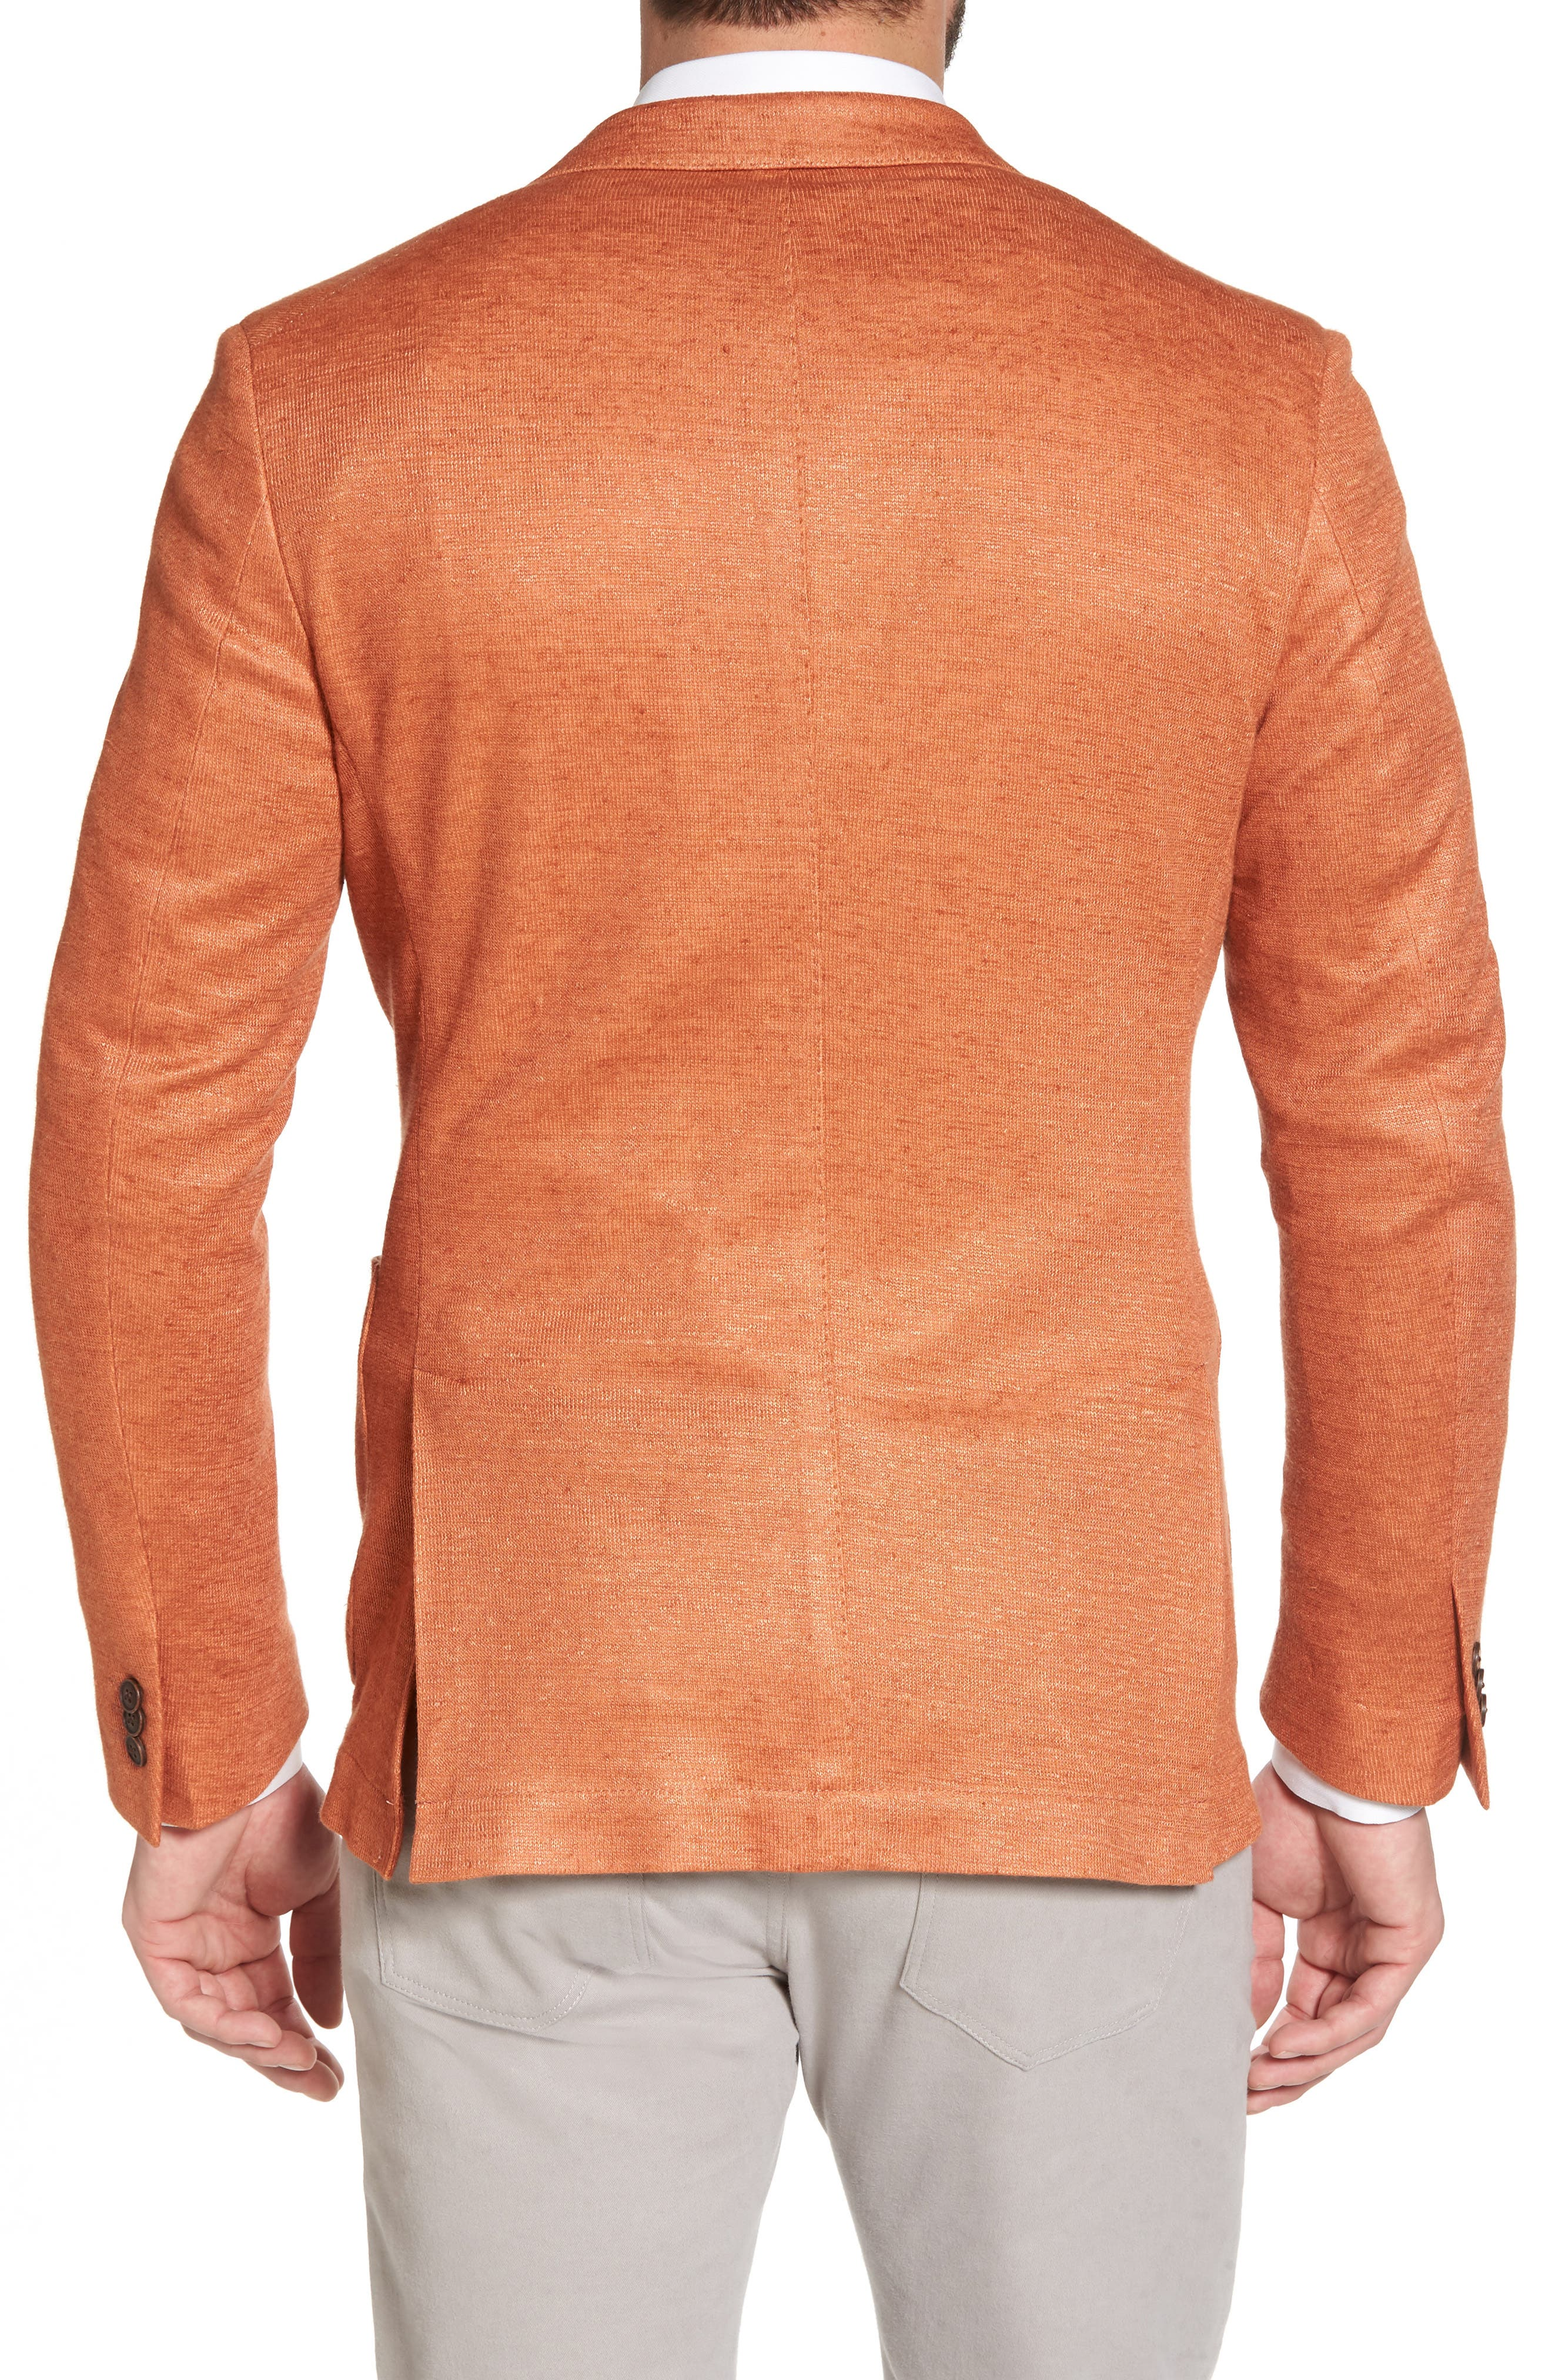 Trim Fit Heathered Jersey Blazer,                             Alternate thumbnail 2, color,                             Orange